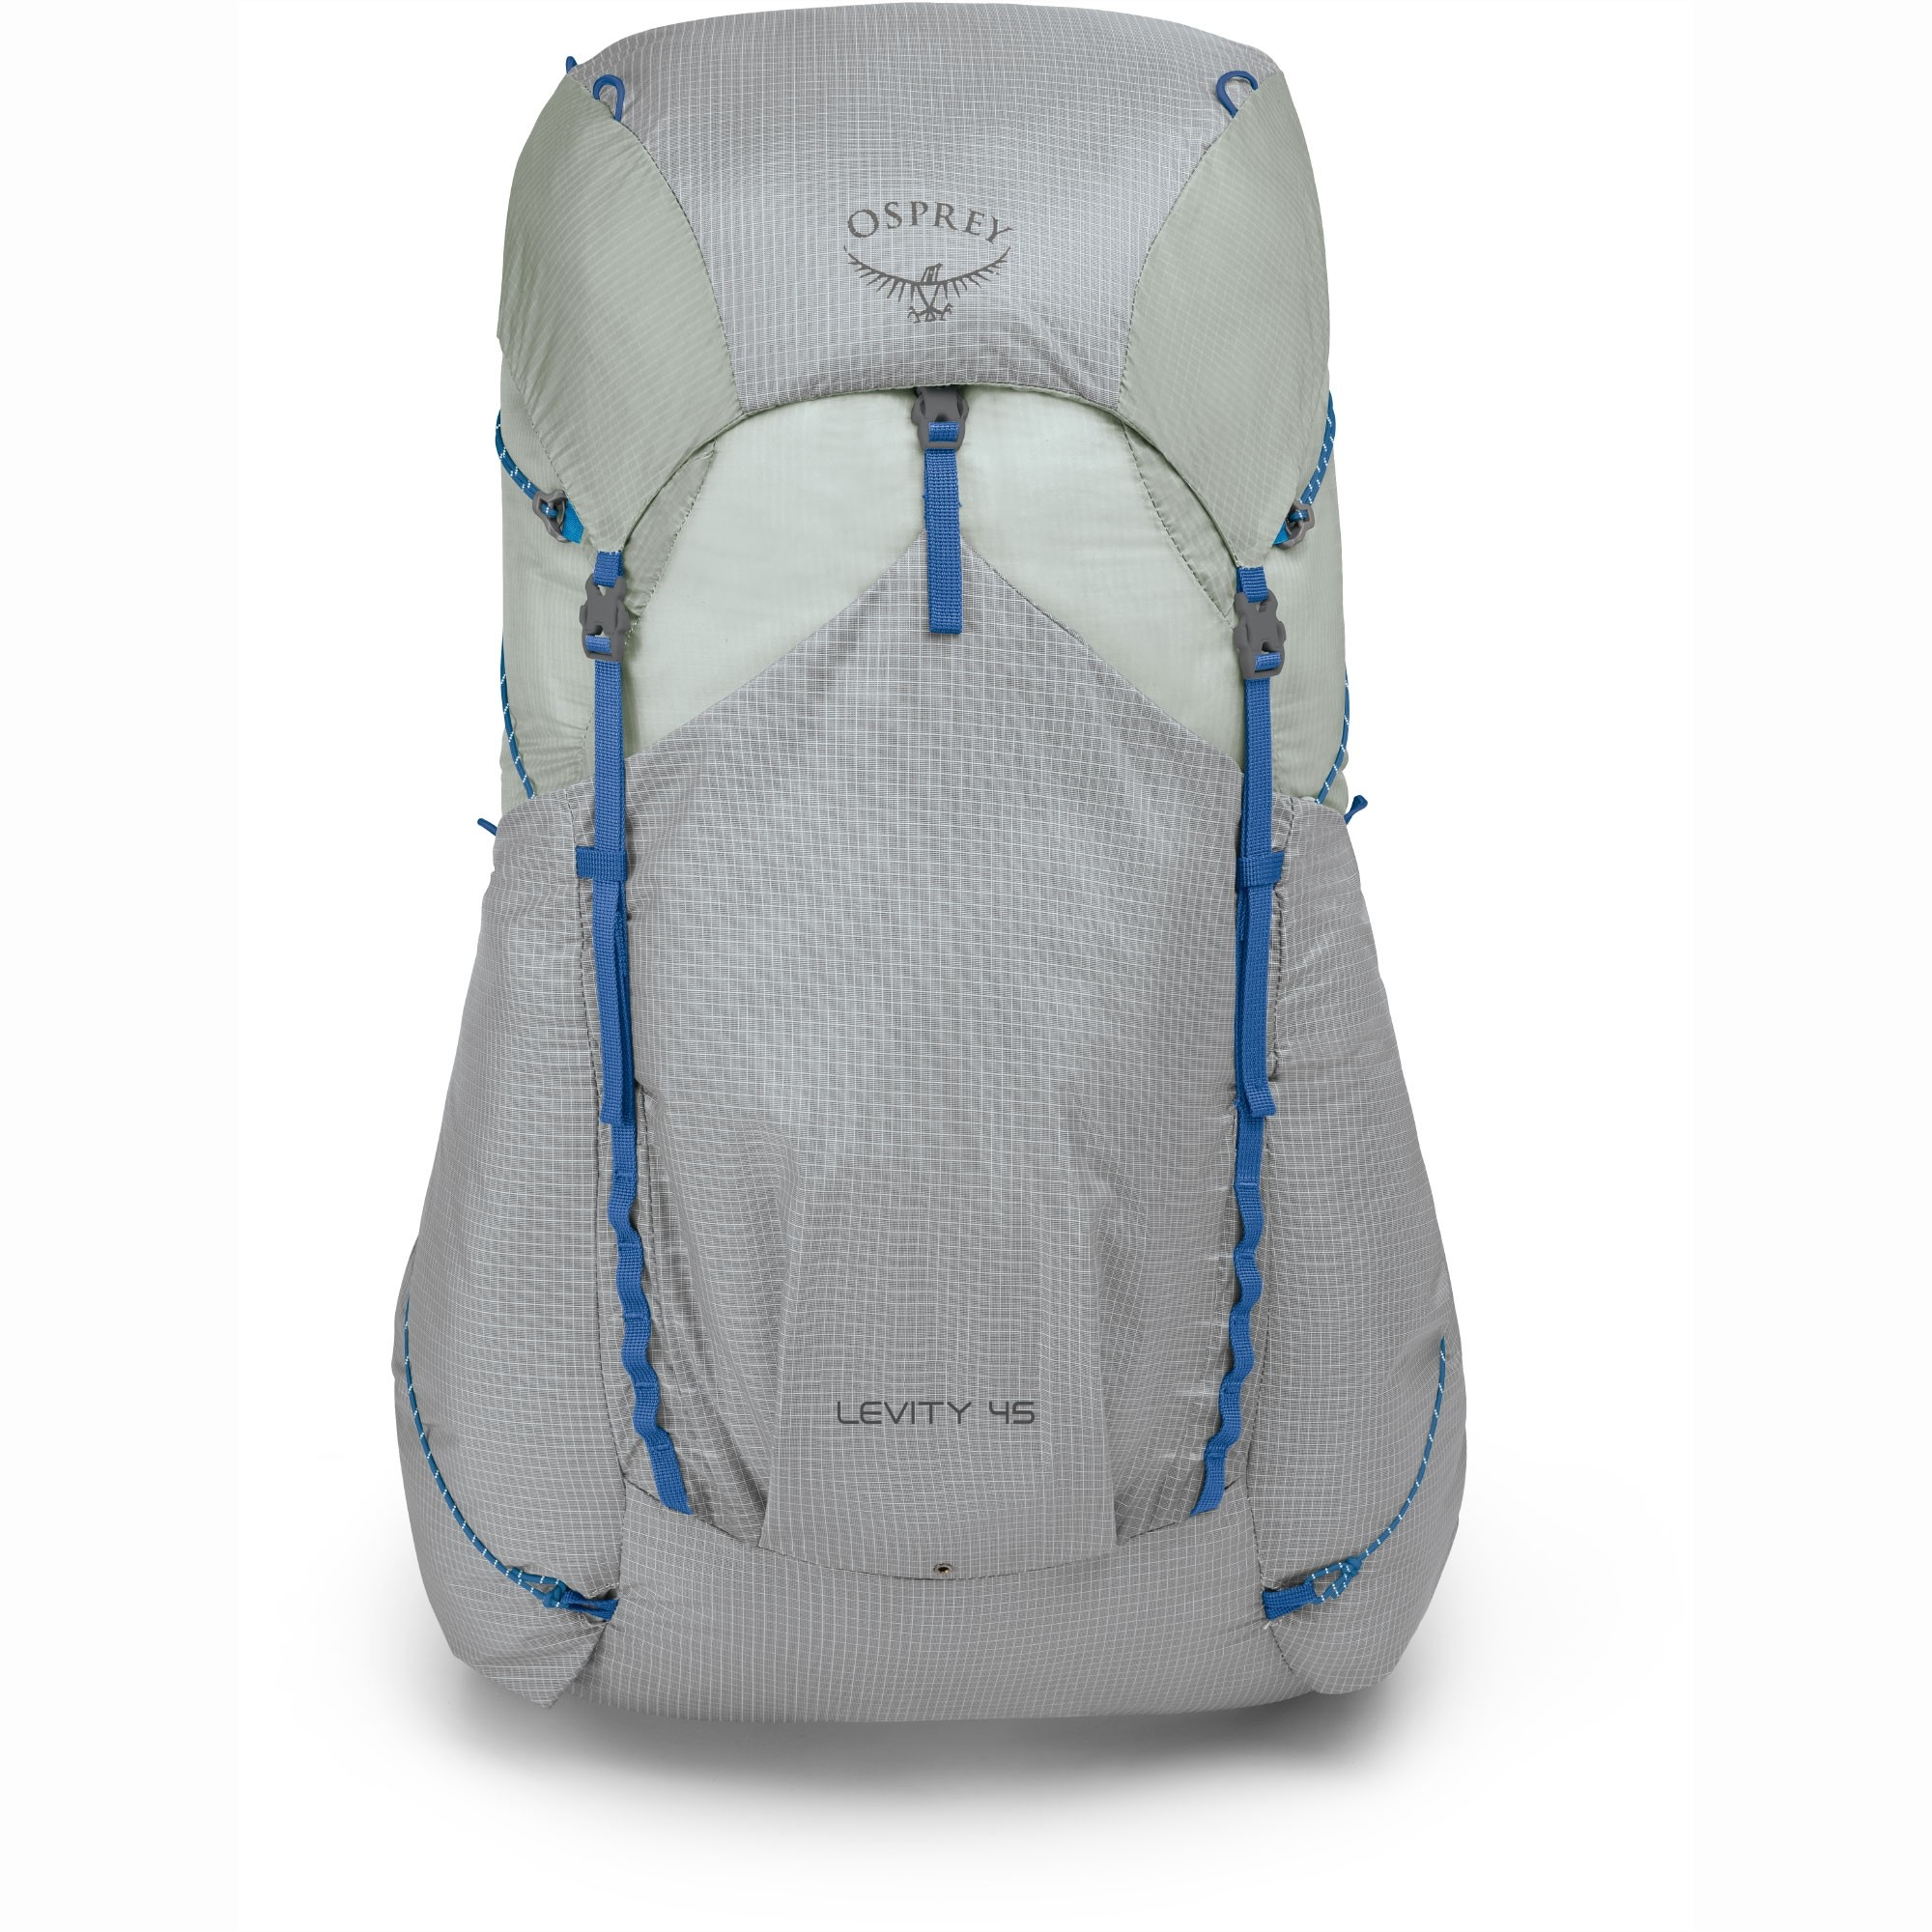 Osprey Levity 45 Ultralight Backpack - Parallax Silver - Front